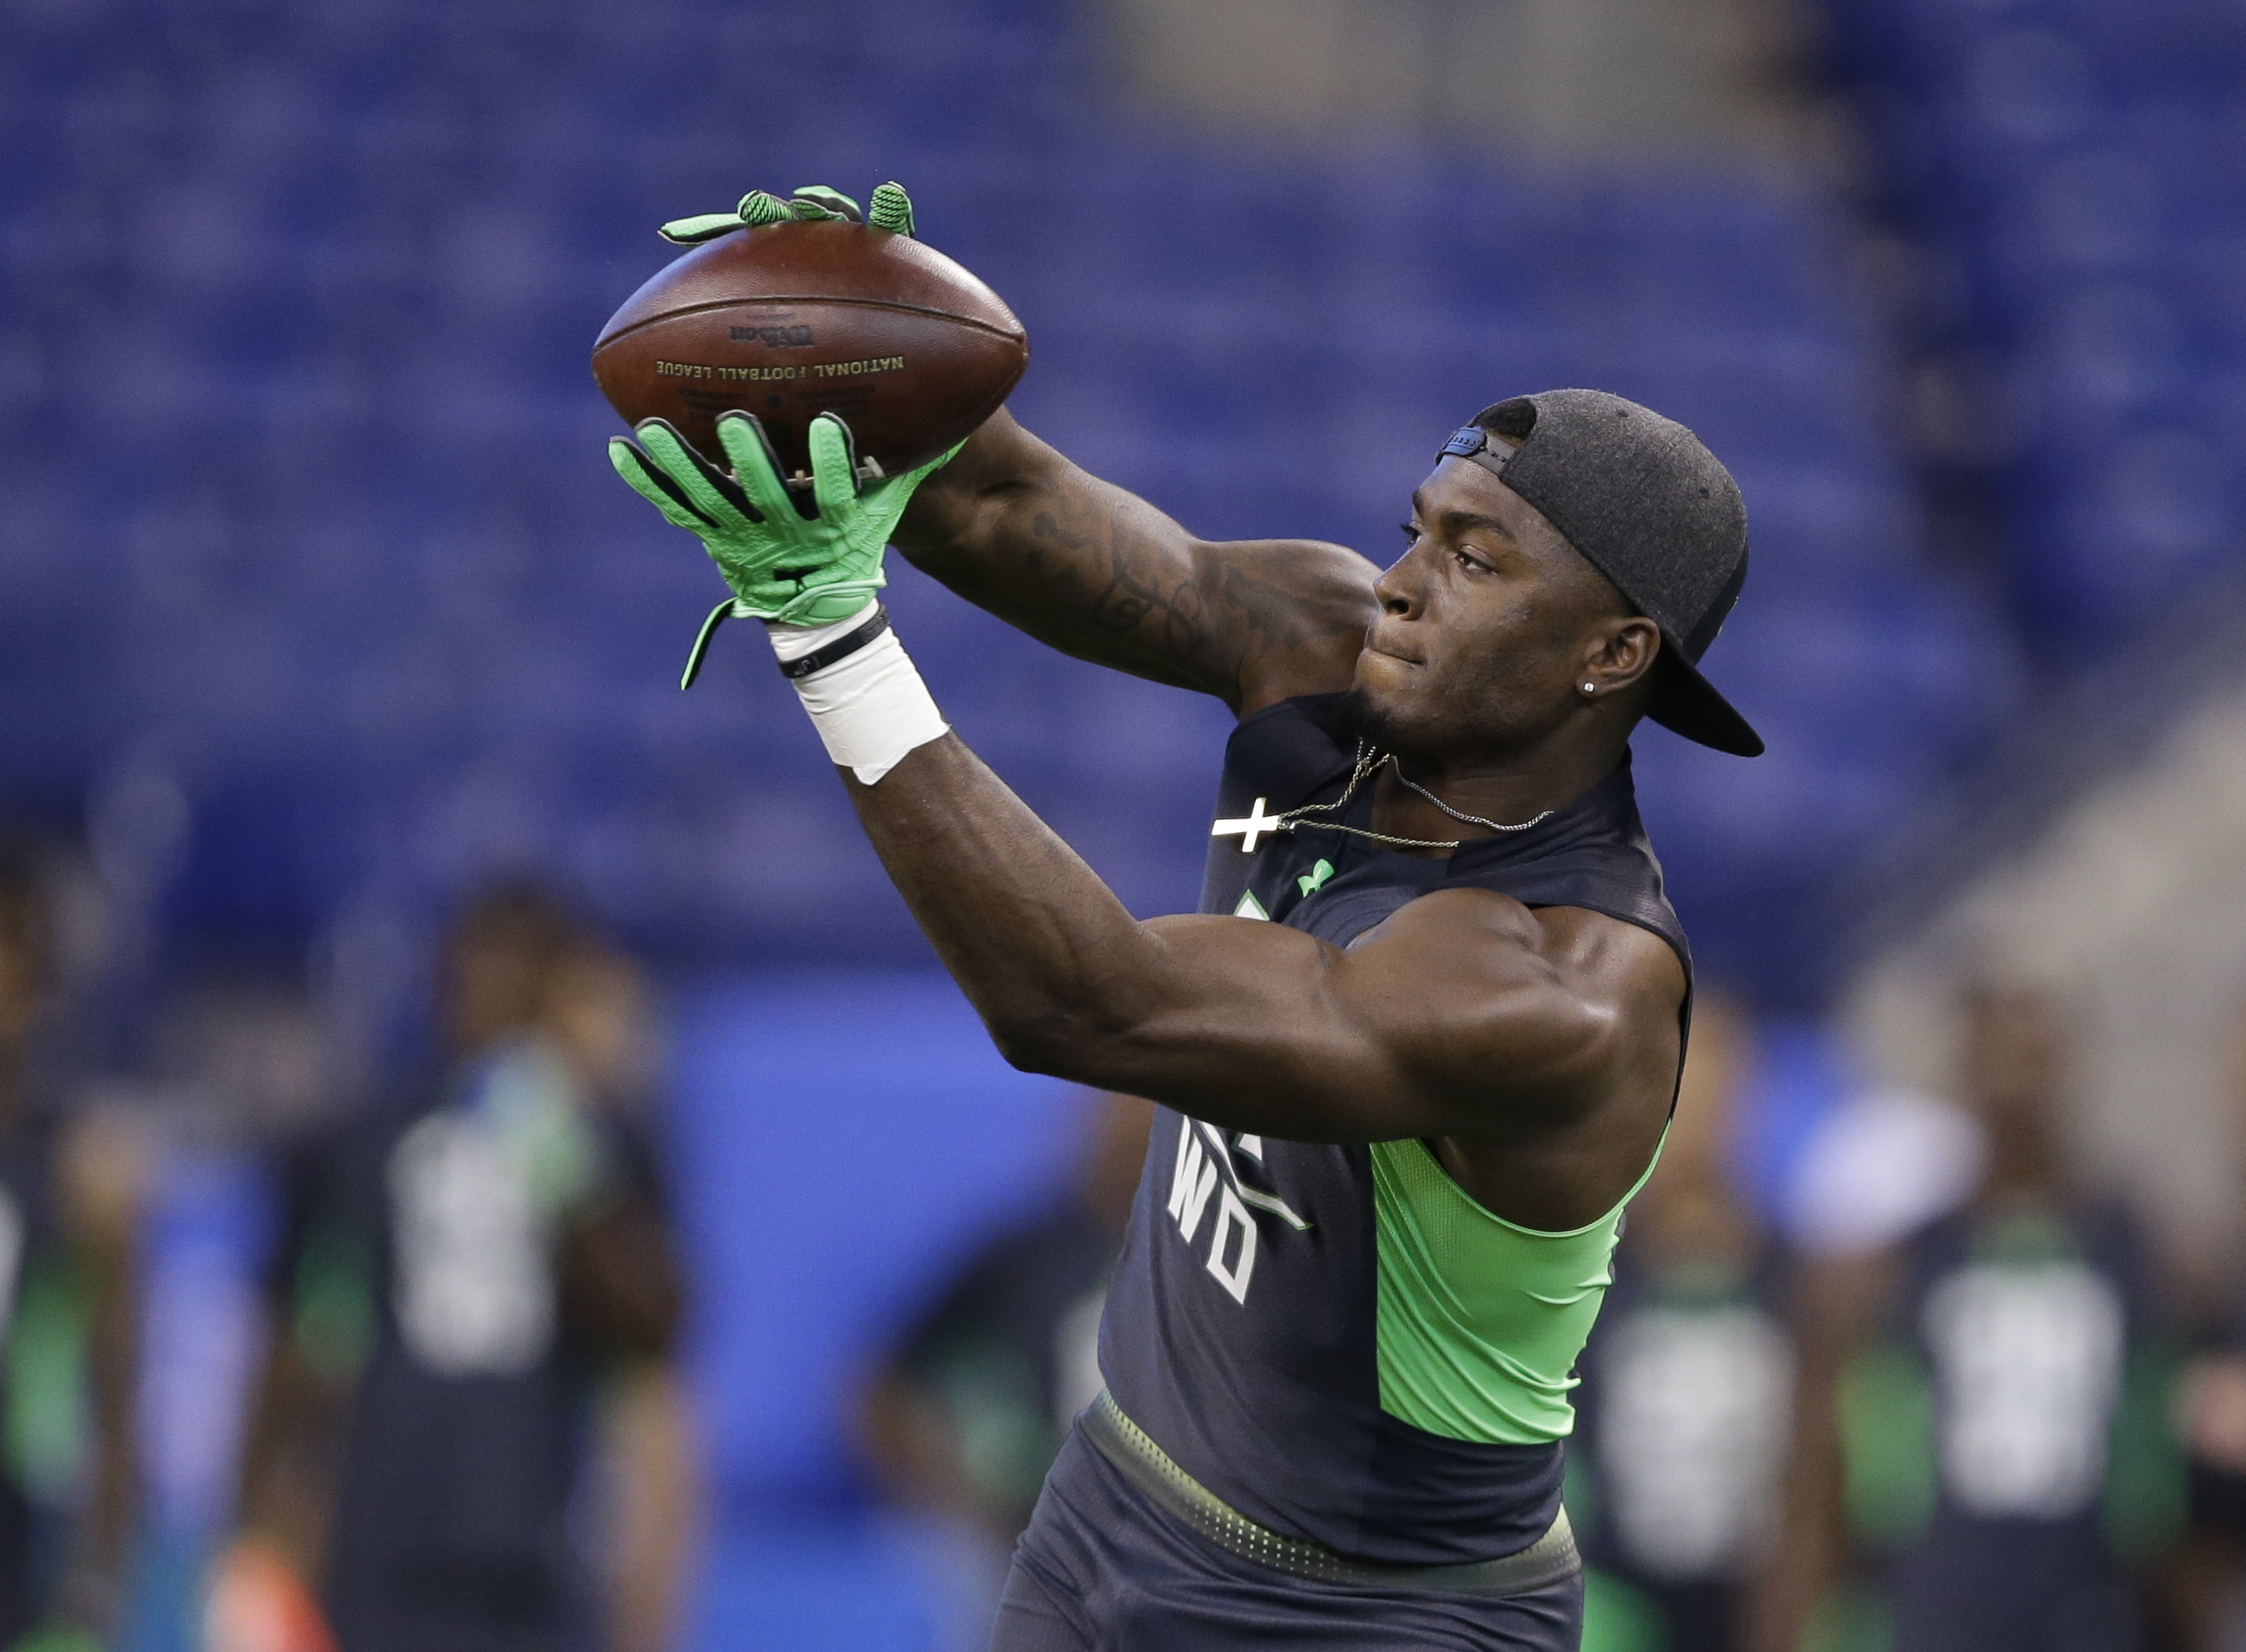 Mississippi receiver Laquon Treadwell runs a drill at the NFL Scouting Combine (Photo: Darron Cummings, Associated Press)